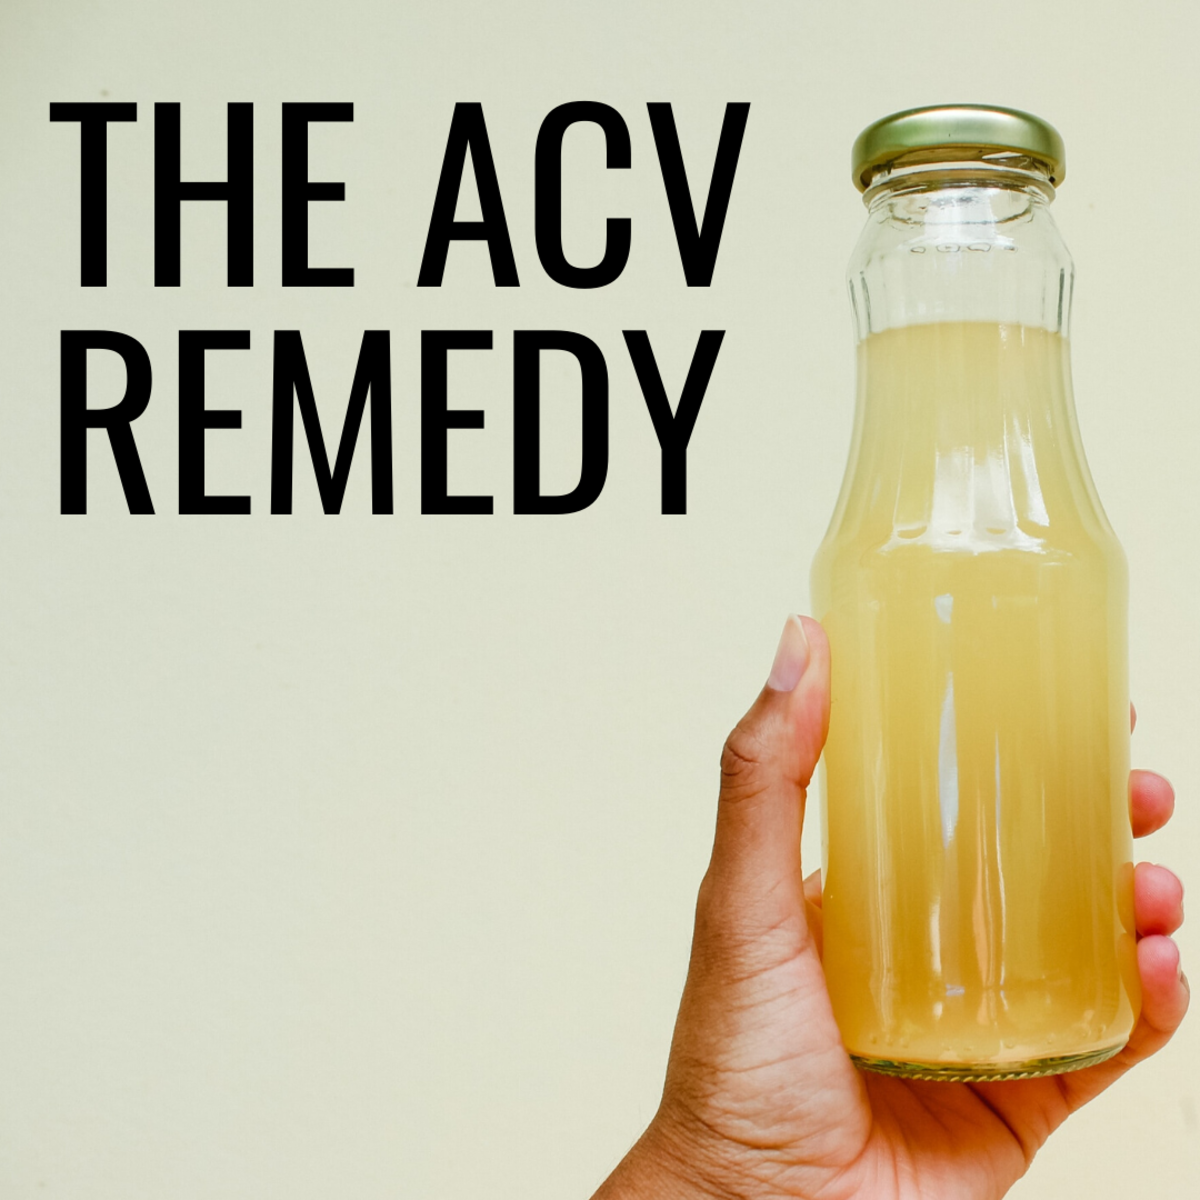 Apple cider vinegar is an excellent remedy when diluted properly.